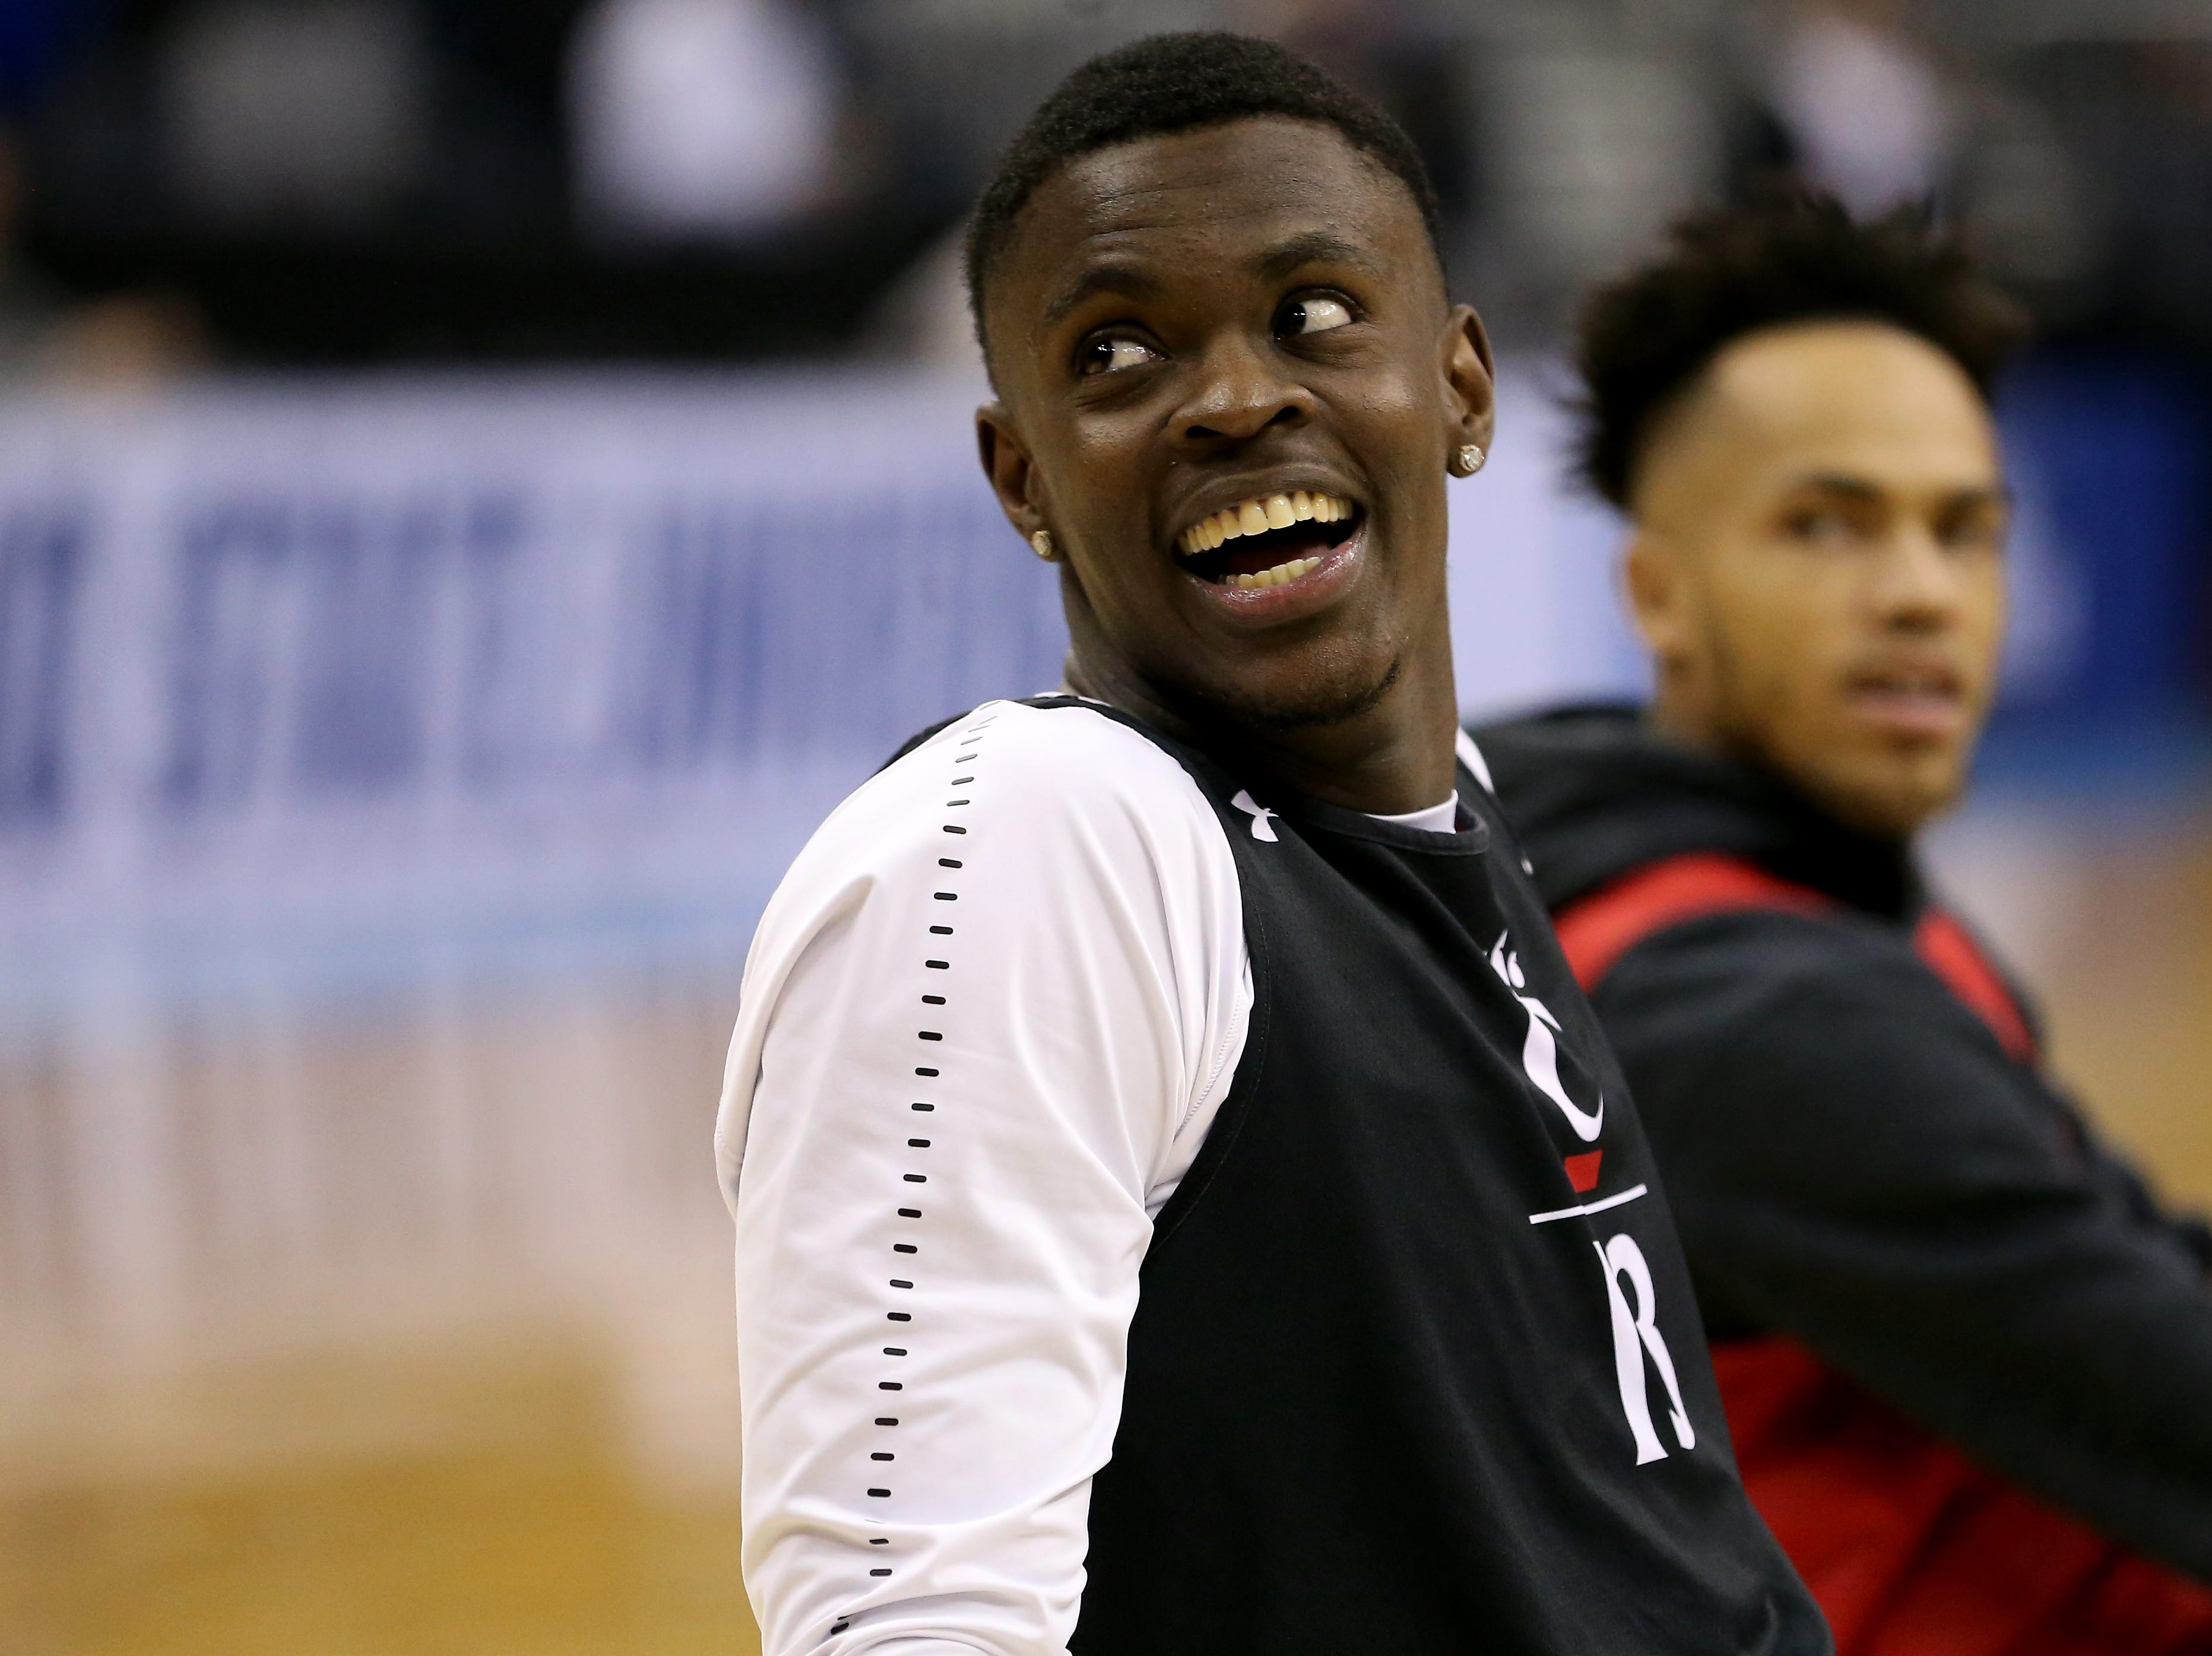 Cincinnati Bearcats forward Tre Scott (13) smiles during stretching before open practice, Thursday, March 21, 2019, at Nationwide Arena in Columbus, Ohio.